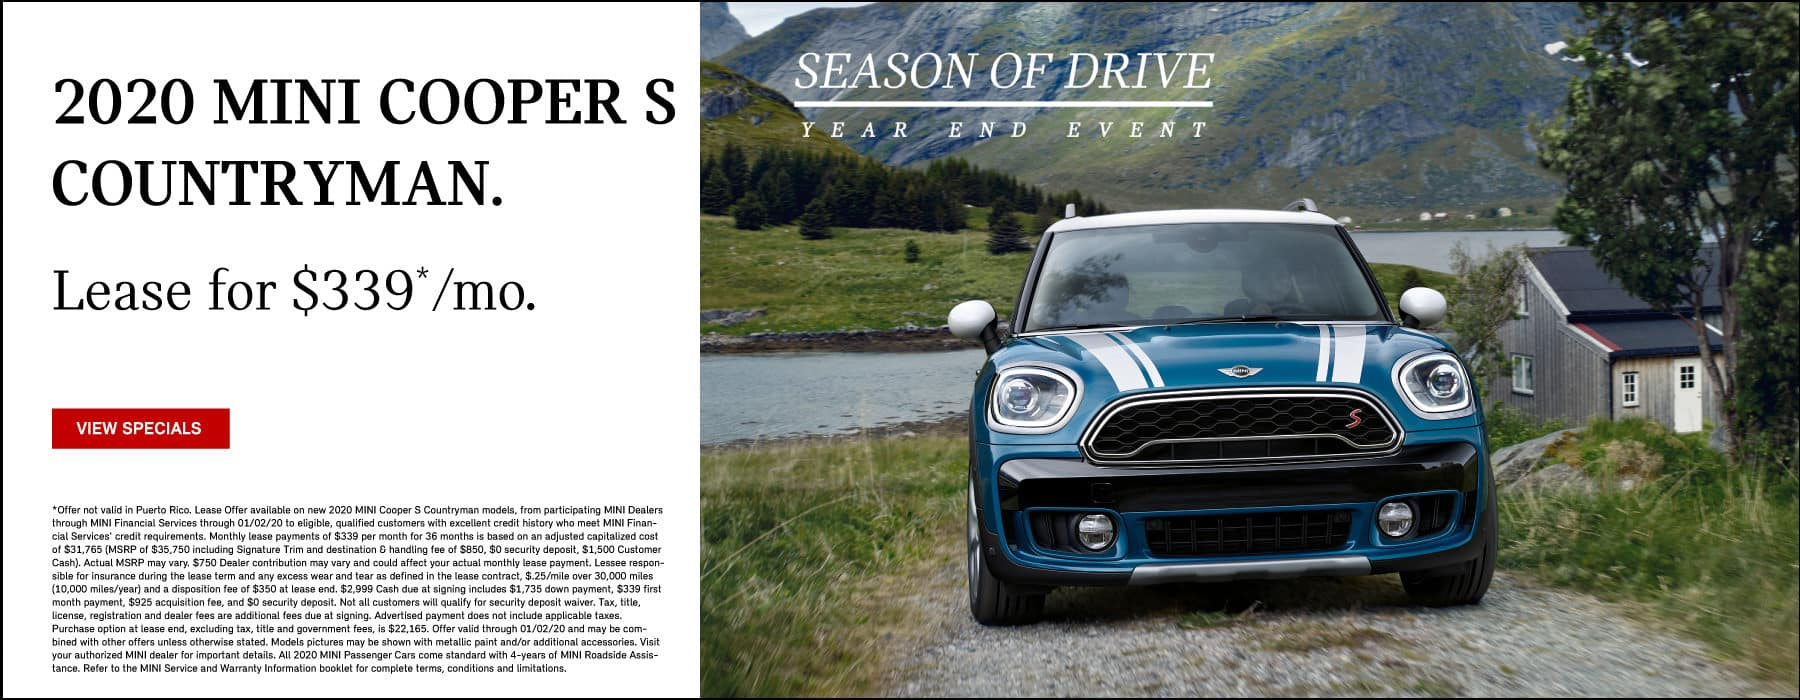 2020 MINI Cooper S Countryman Lease for $339 per month.  View Specials.  Blue MINI Cooper S Countryman Driving up a mountain terrain.